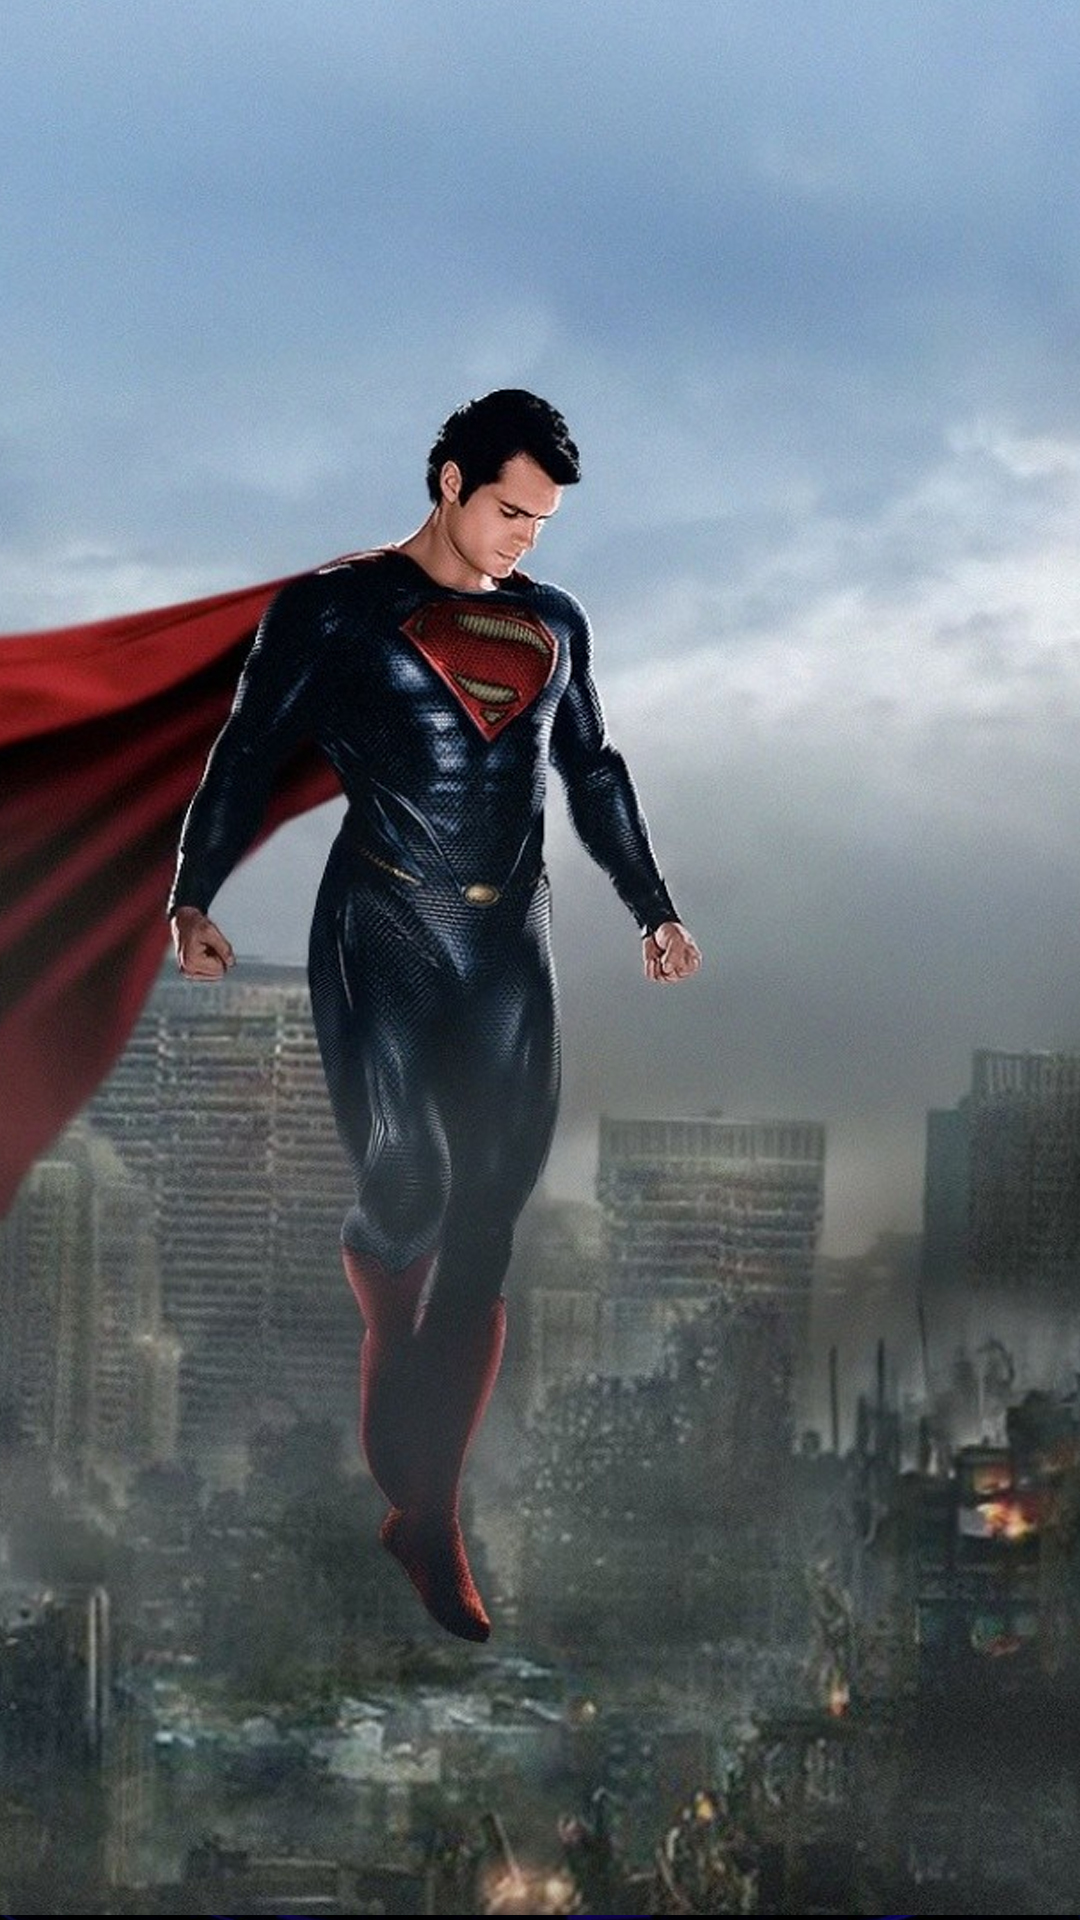 Superman over the City